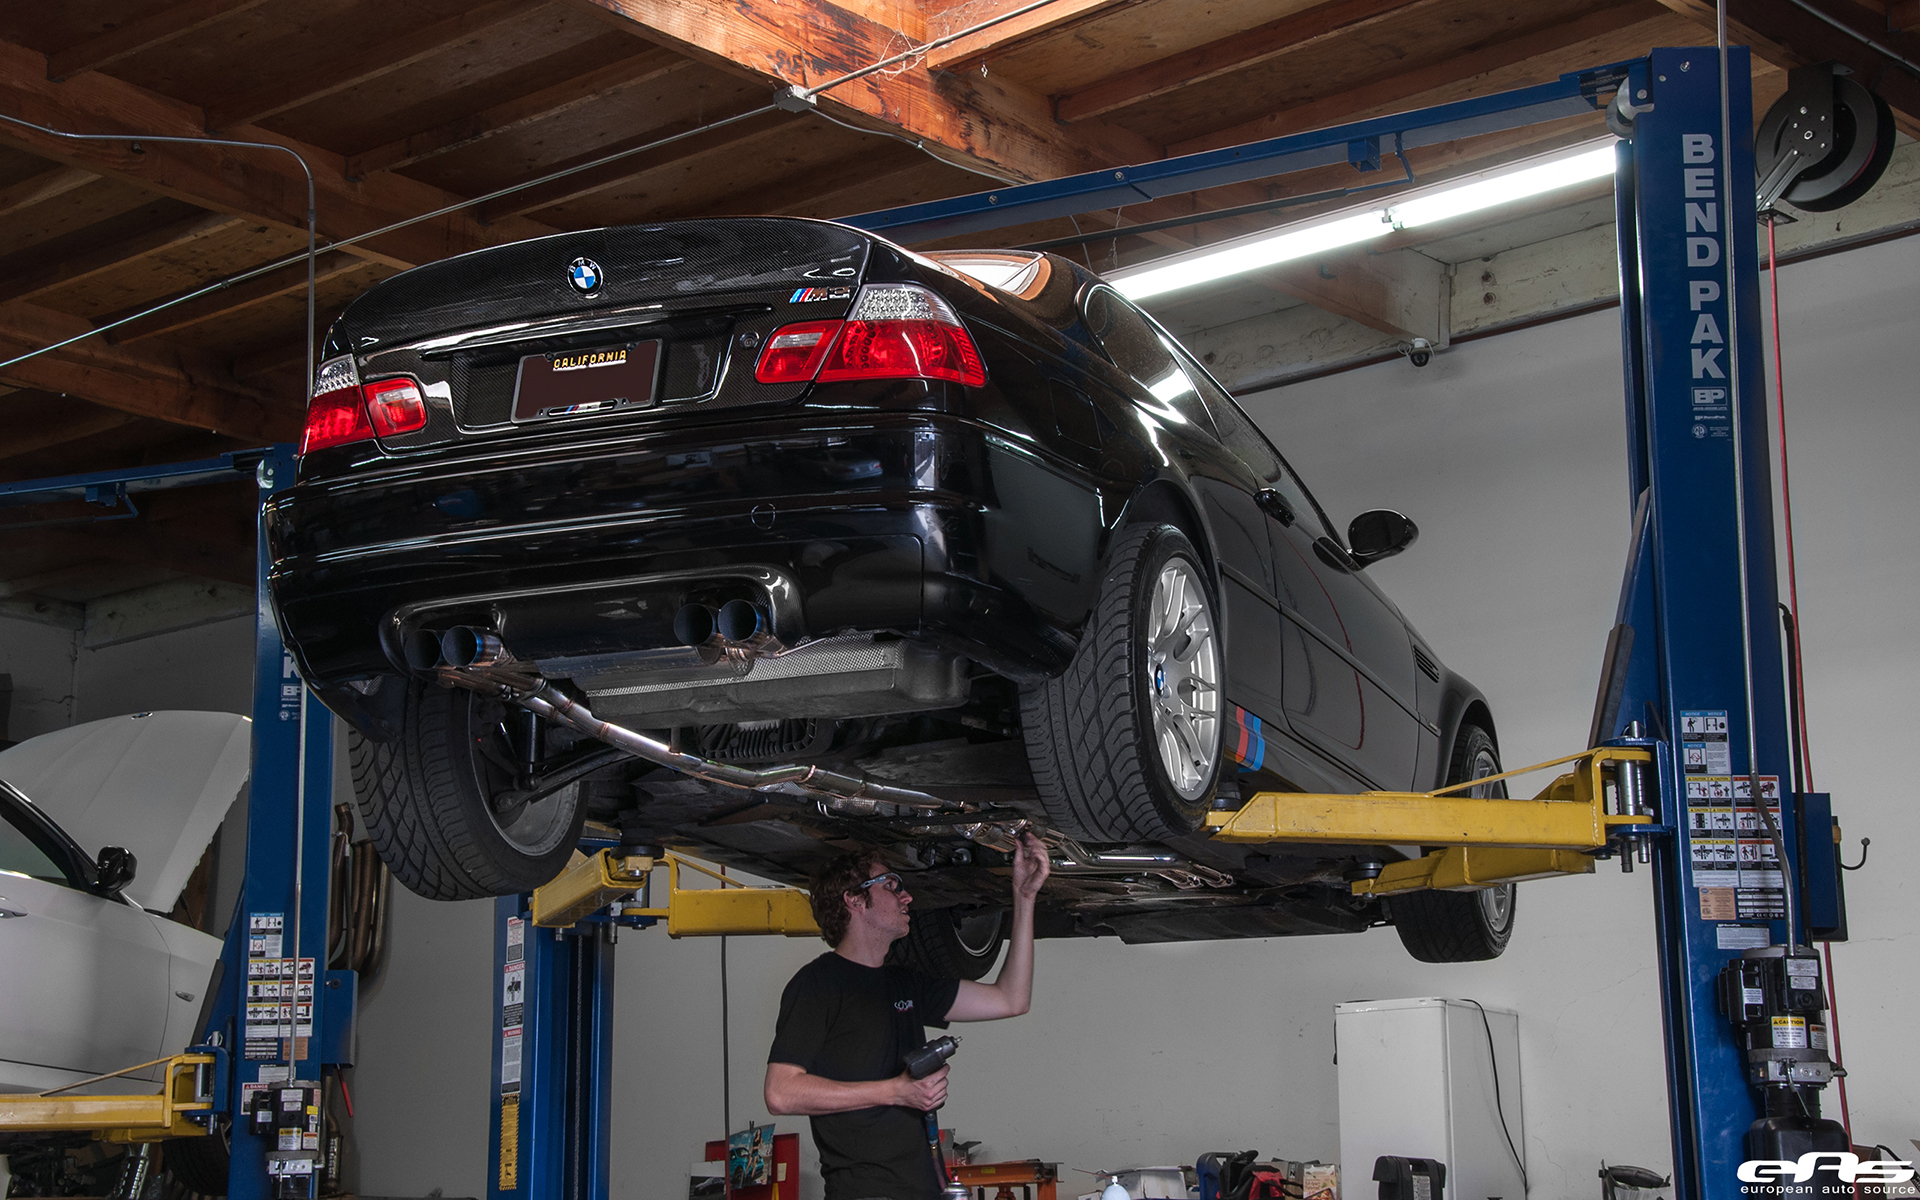 A Jet Black Bmw E46 M3 Gets A Supercharger